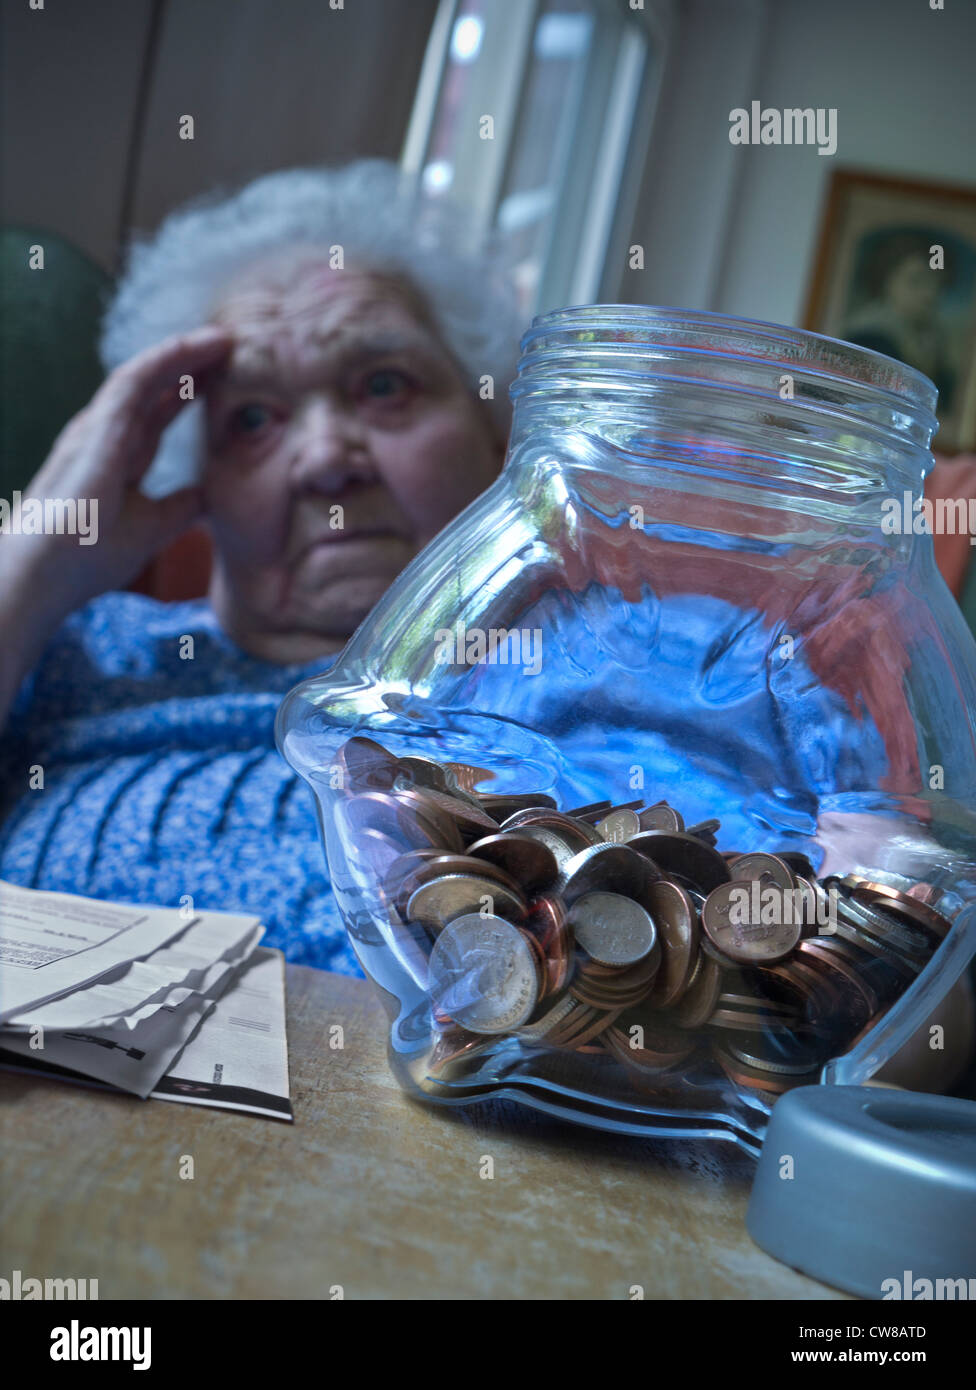 Apprehensive worried vulnerable senior elderly old age lady in her living room with savings pot and papers on table - Stock Image